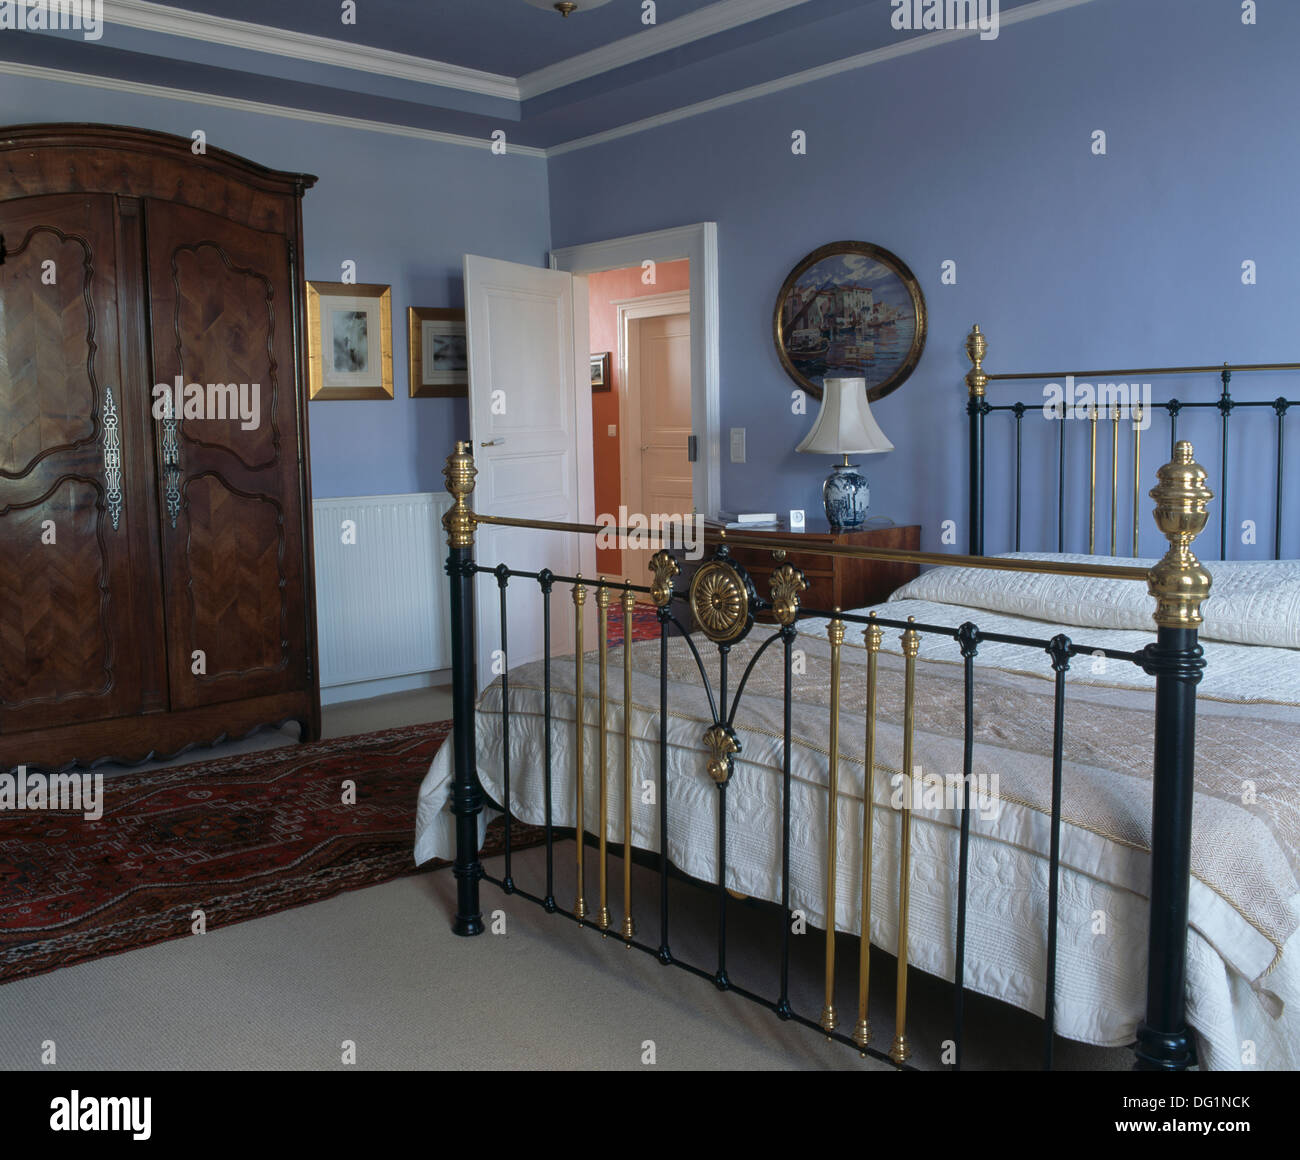 Antique Brass Bed In Pale Blue French Country Bedroom With Oak Wardrobe